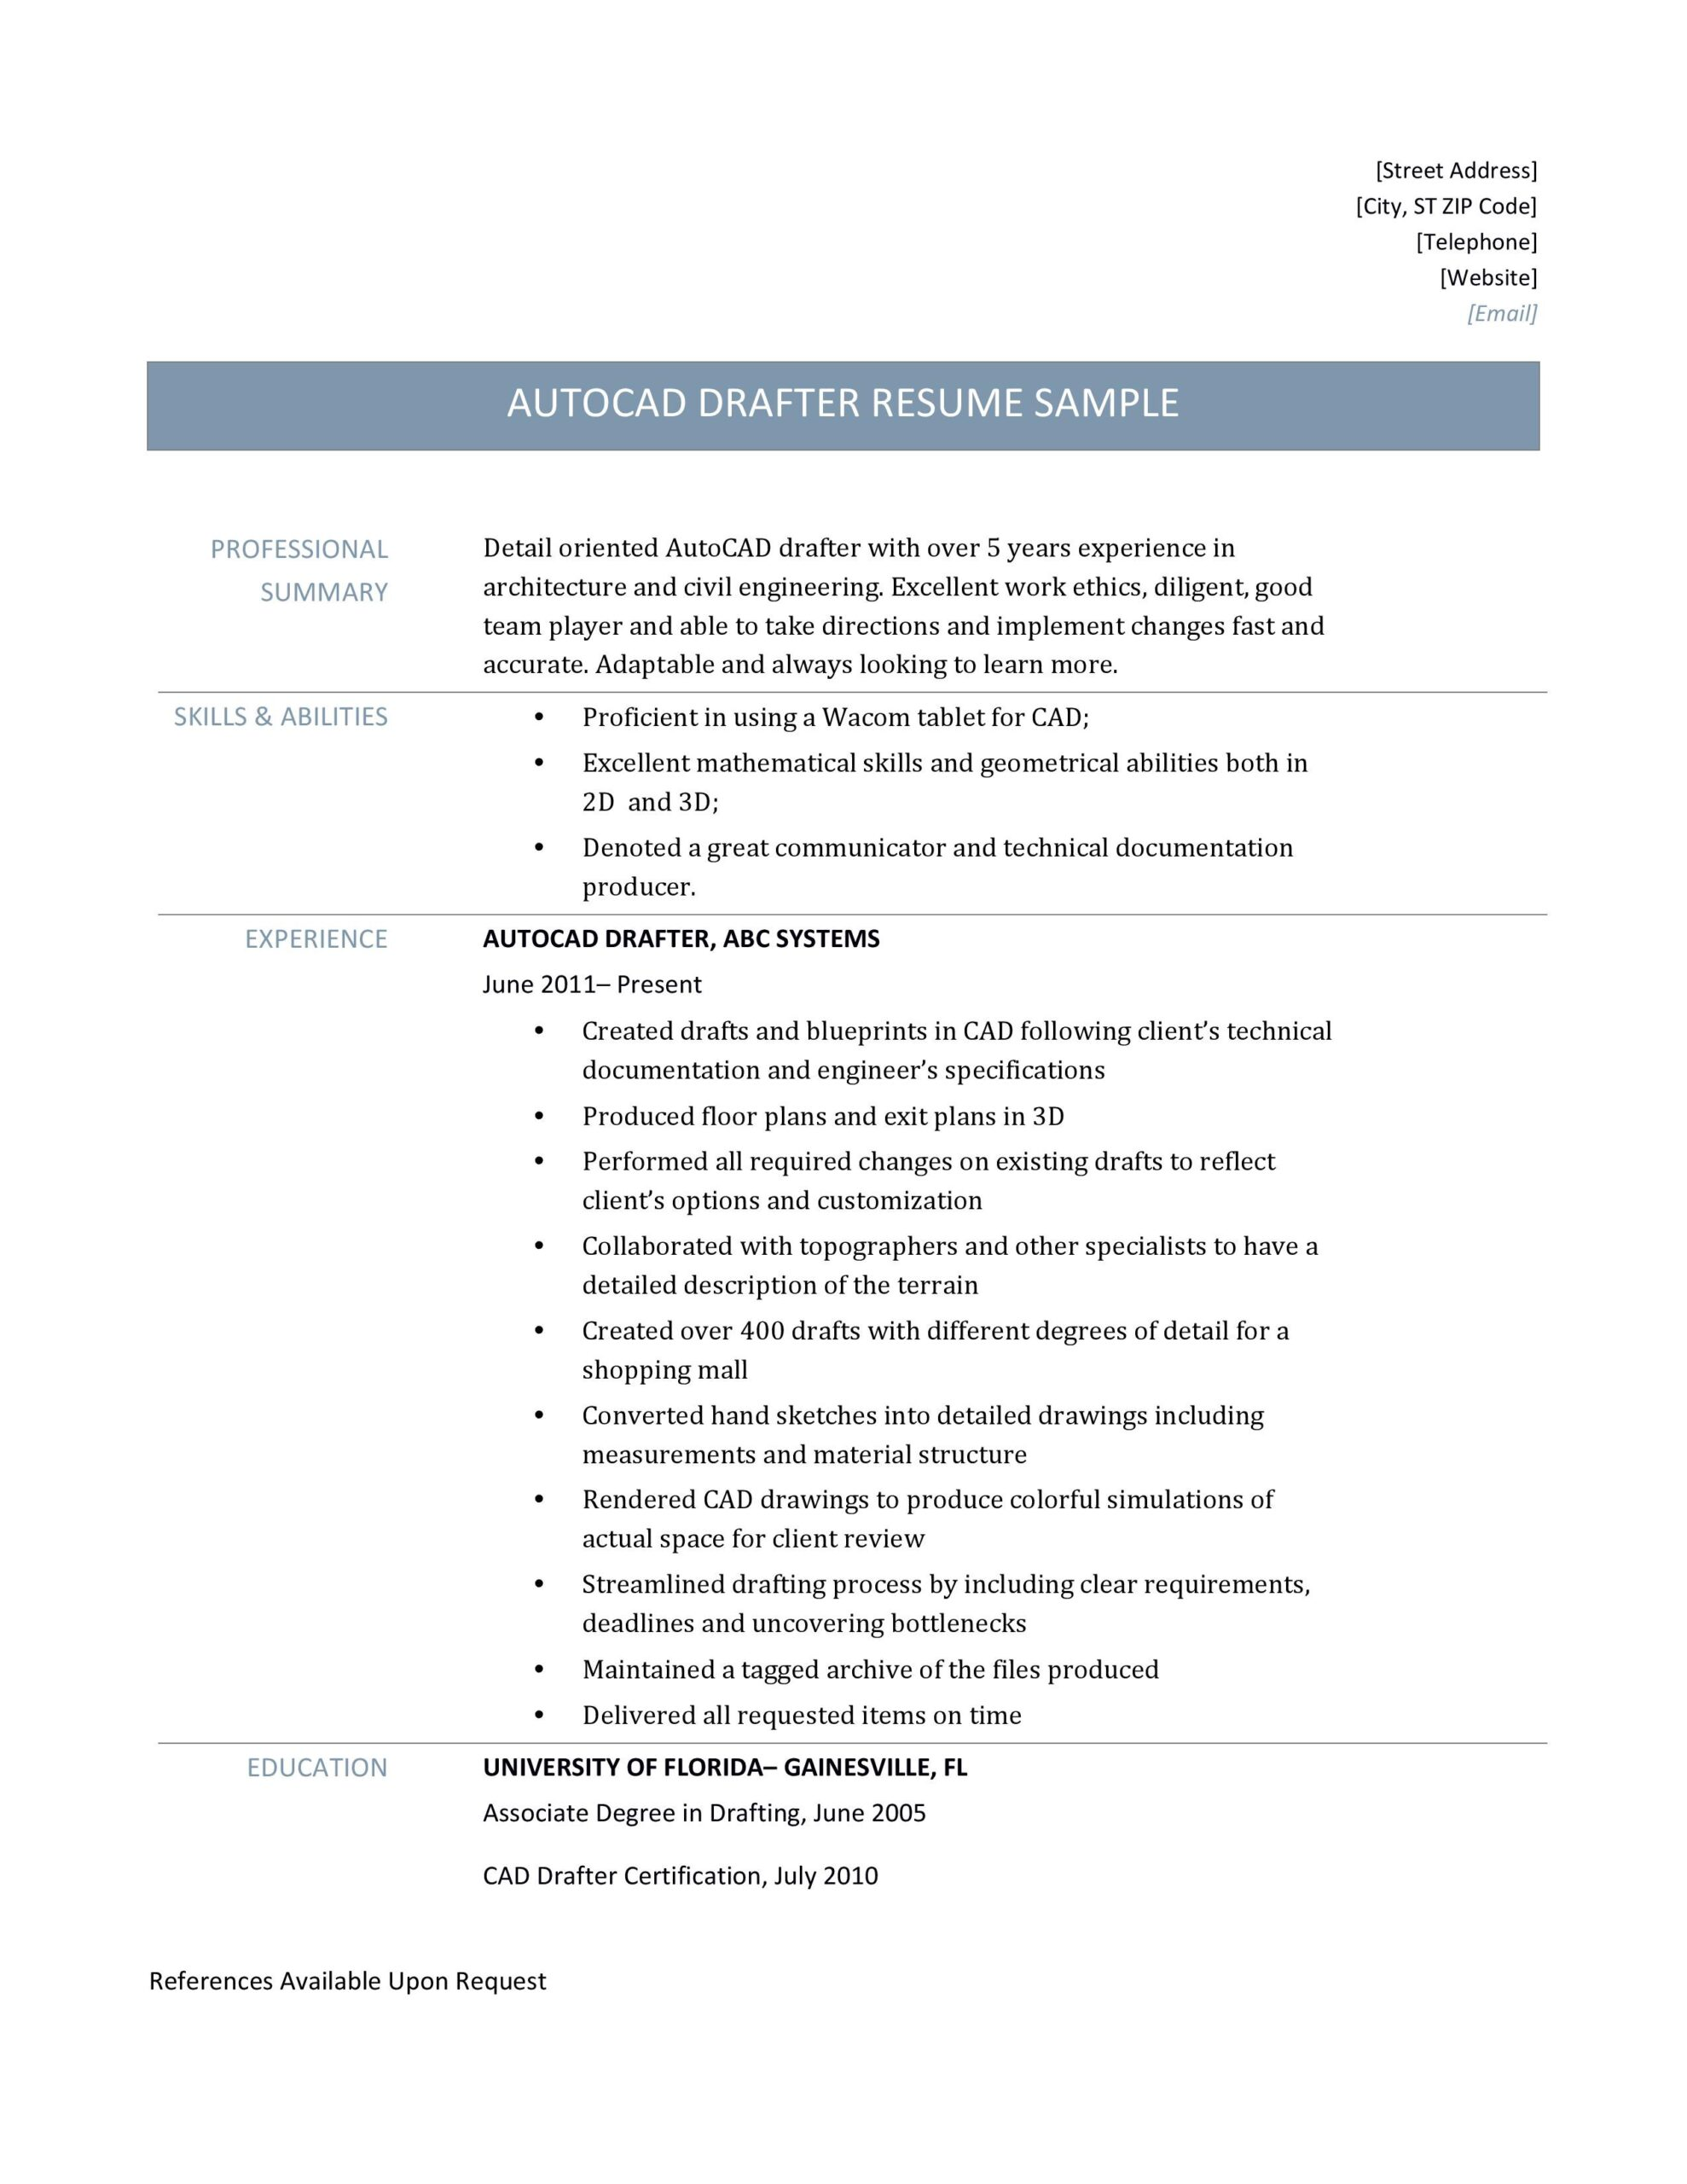 autocad drafter resume sample and job description by builders medium template j2pkzgo0yb Resume Autocad Resume Template